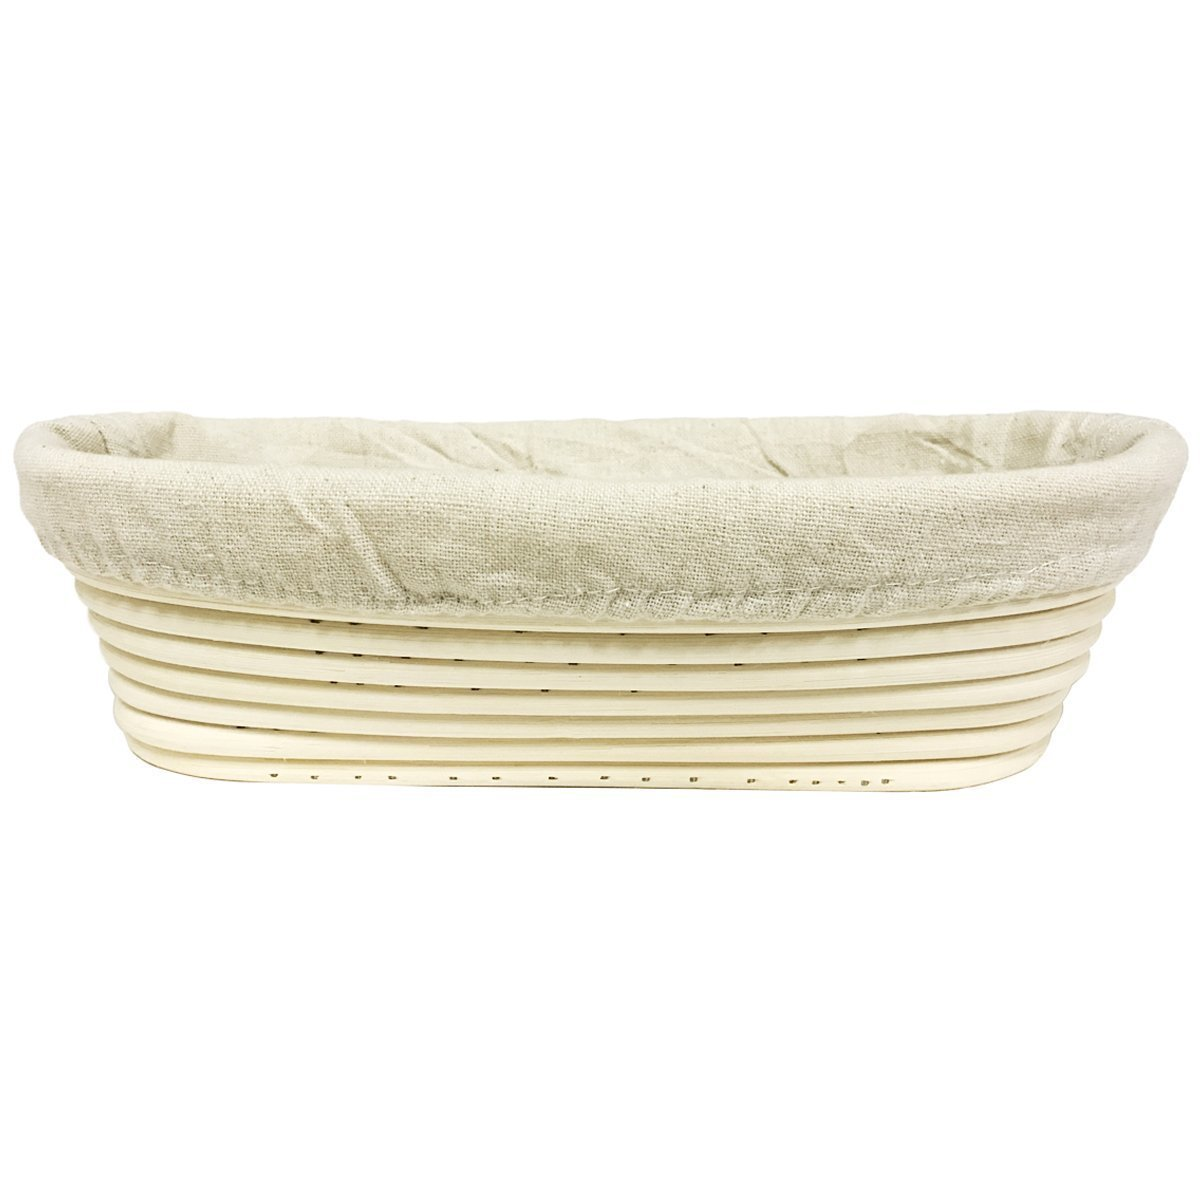 Lanling Oval Shaped Banneton Bread Dough Proofing Rising Rattan Basket & Liner Combo (11)